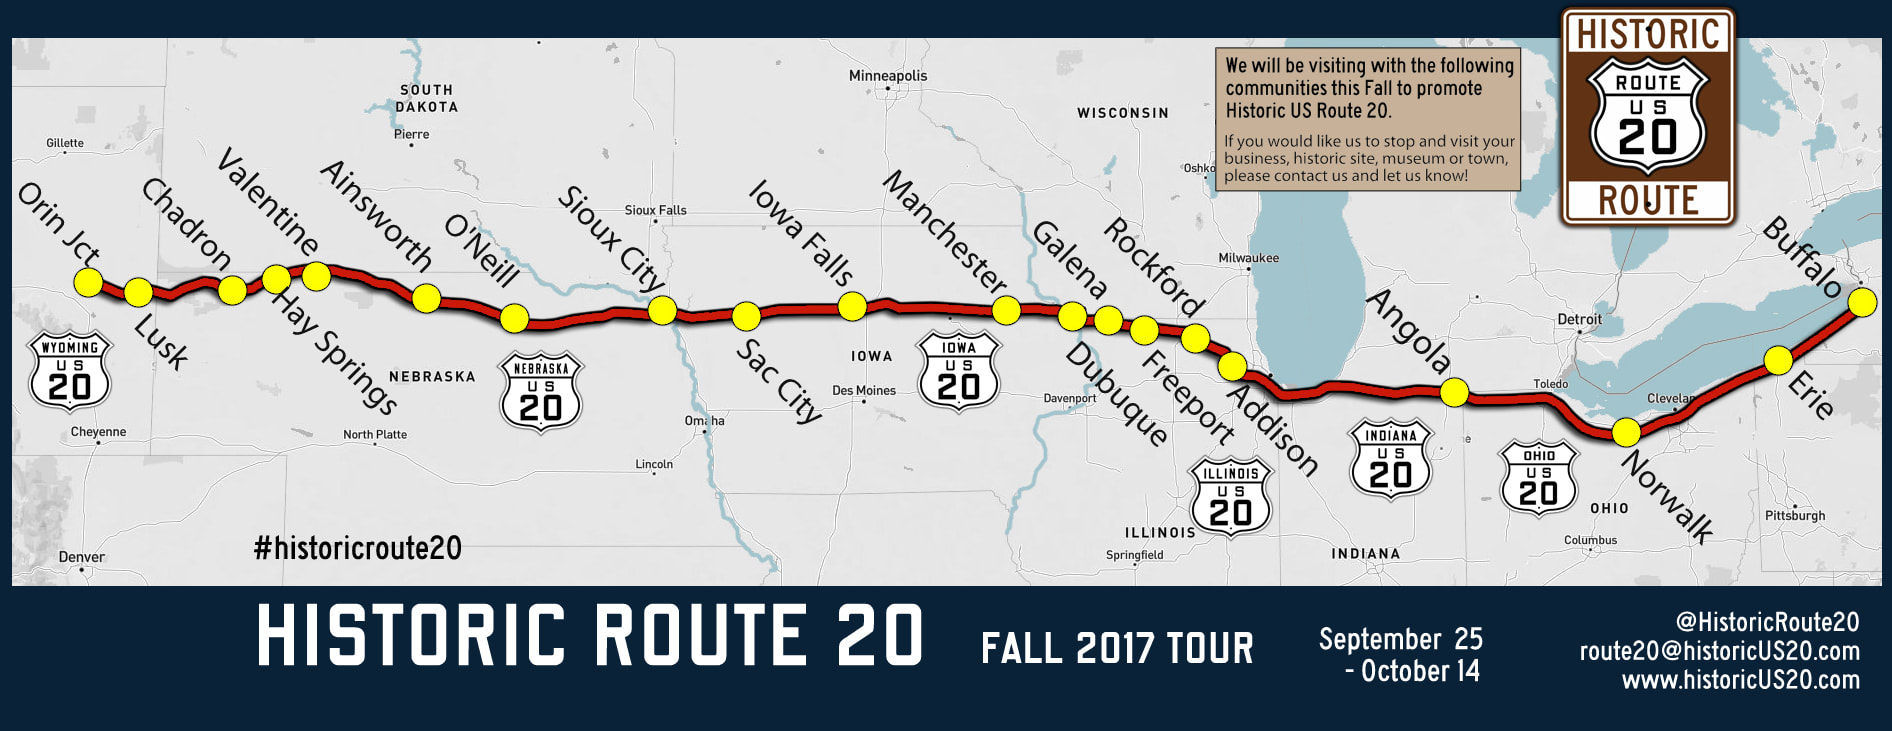 Group hopes to reinstate historic U.S. Highway 20 route in Iowa